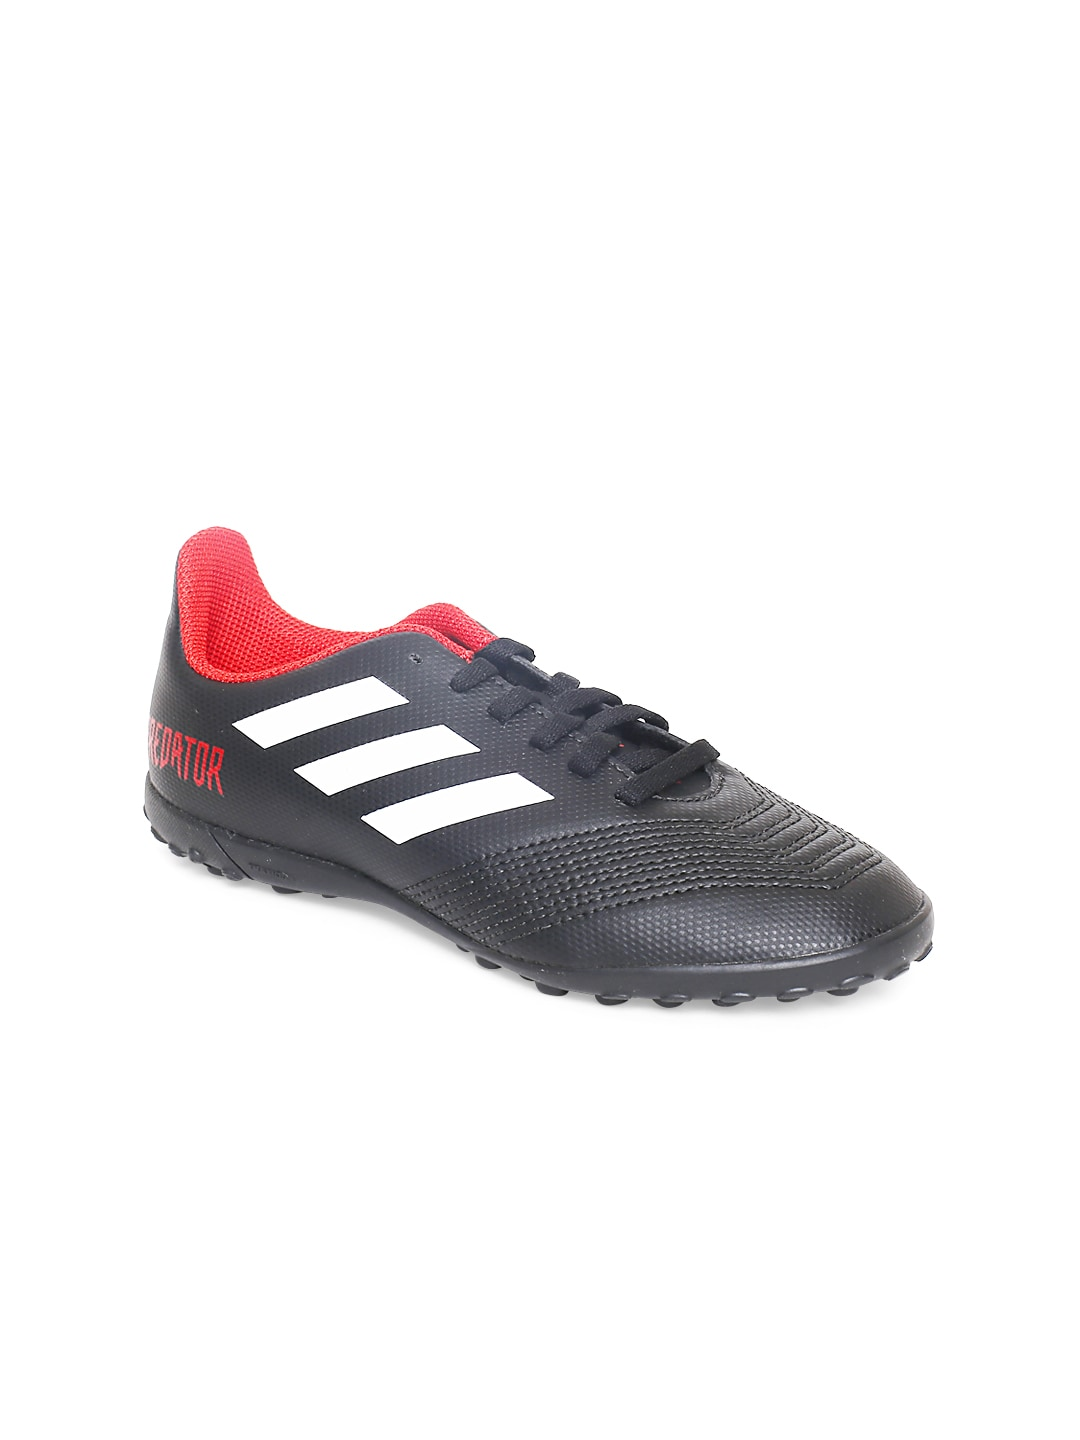 efe622eb173 ... purchase adidas predator buy adidas predator online in india 3c746  c2d9a ...